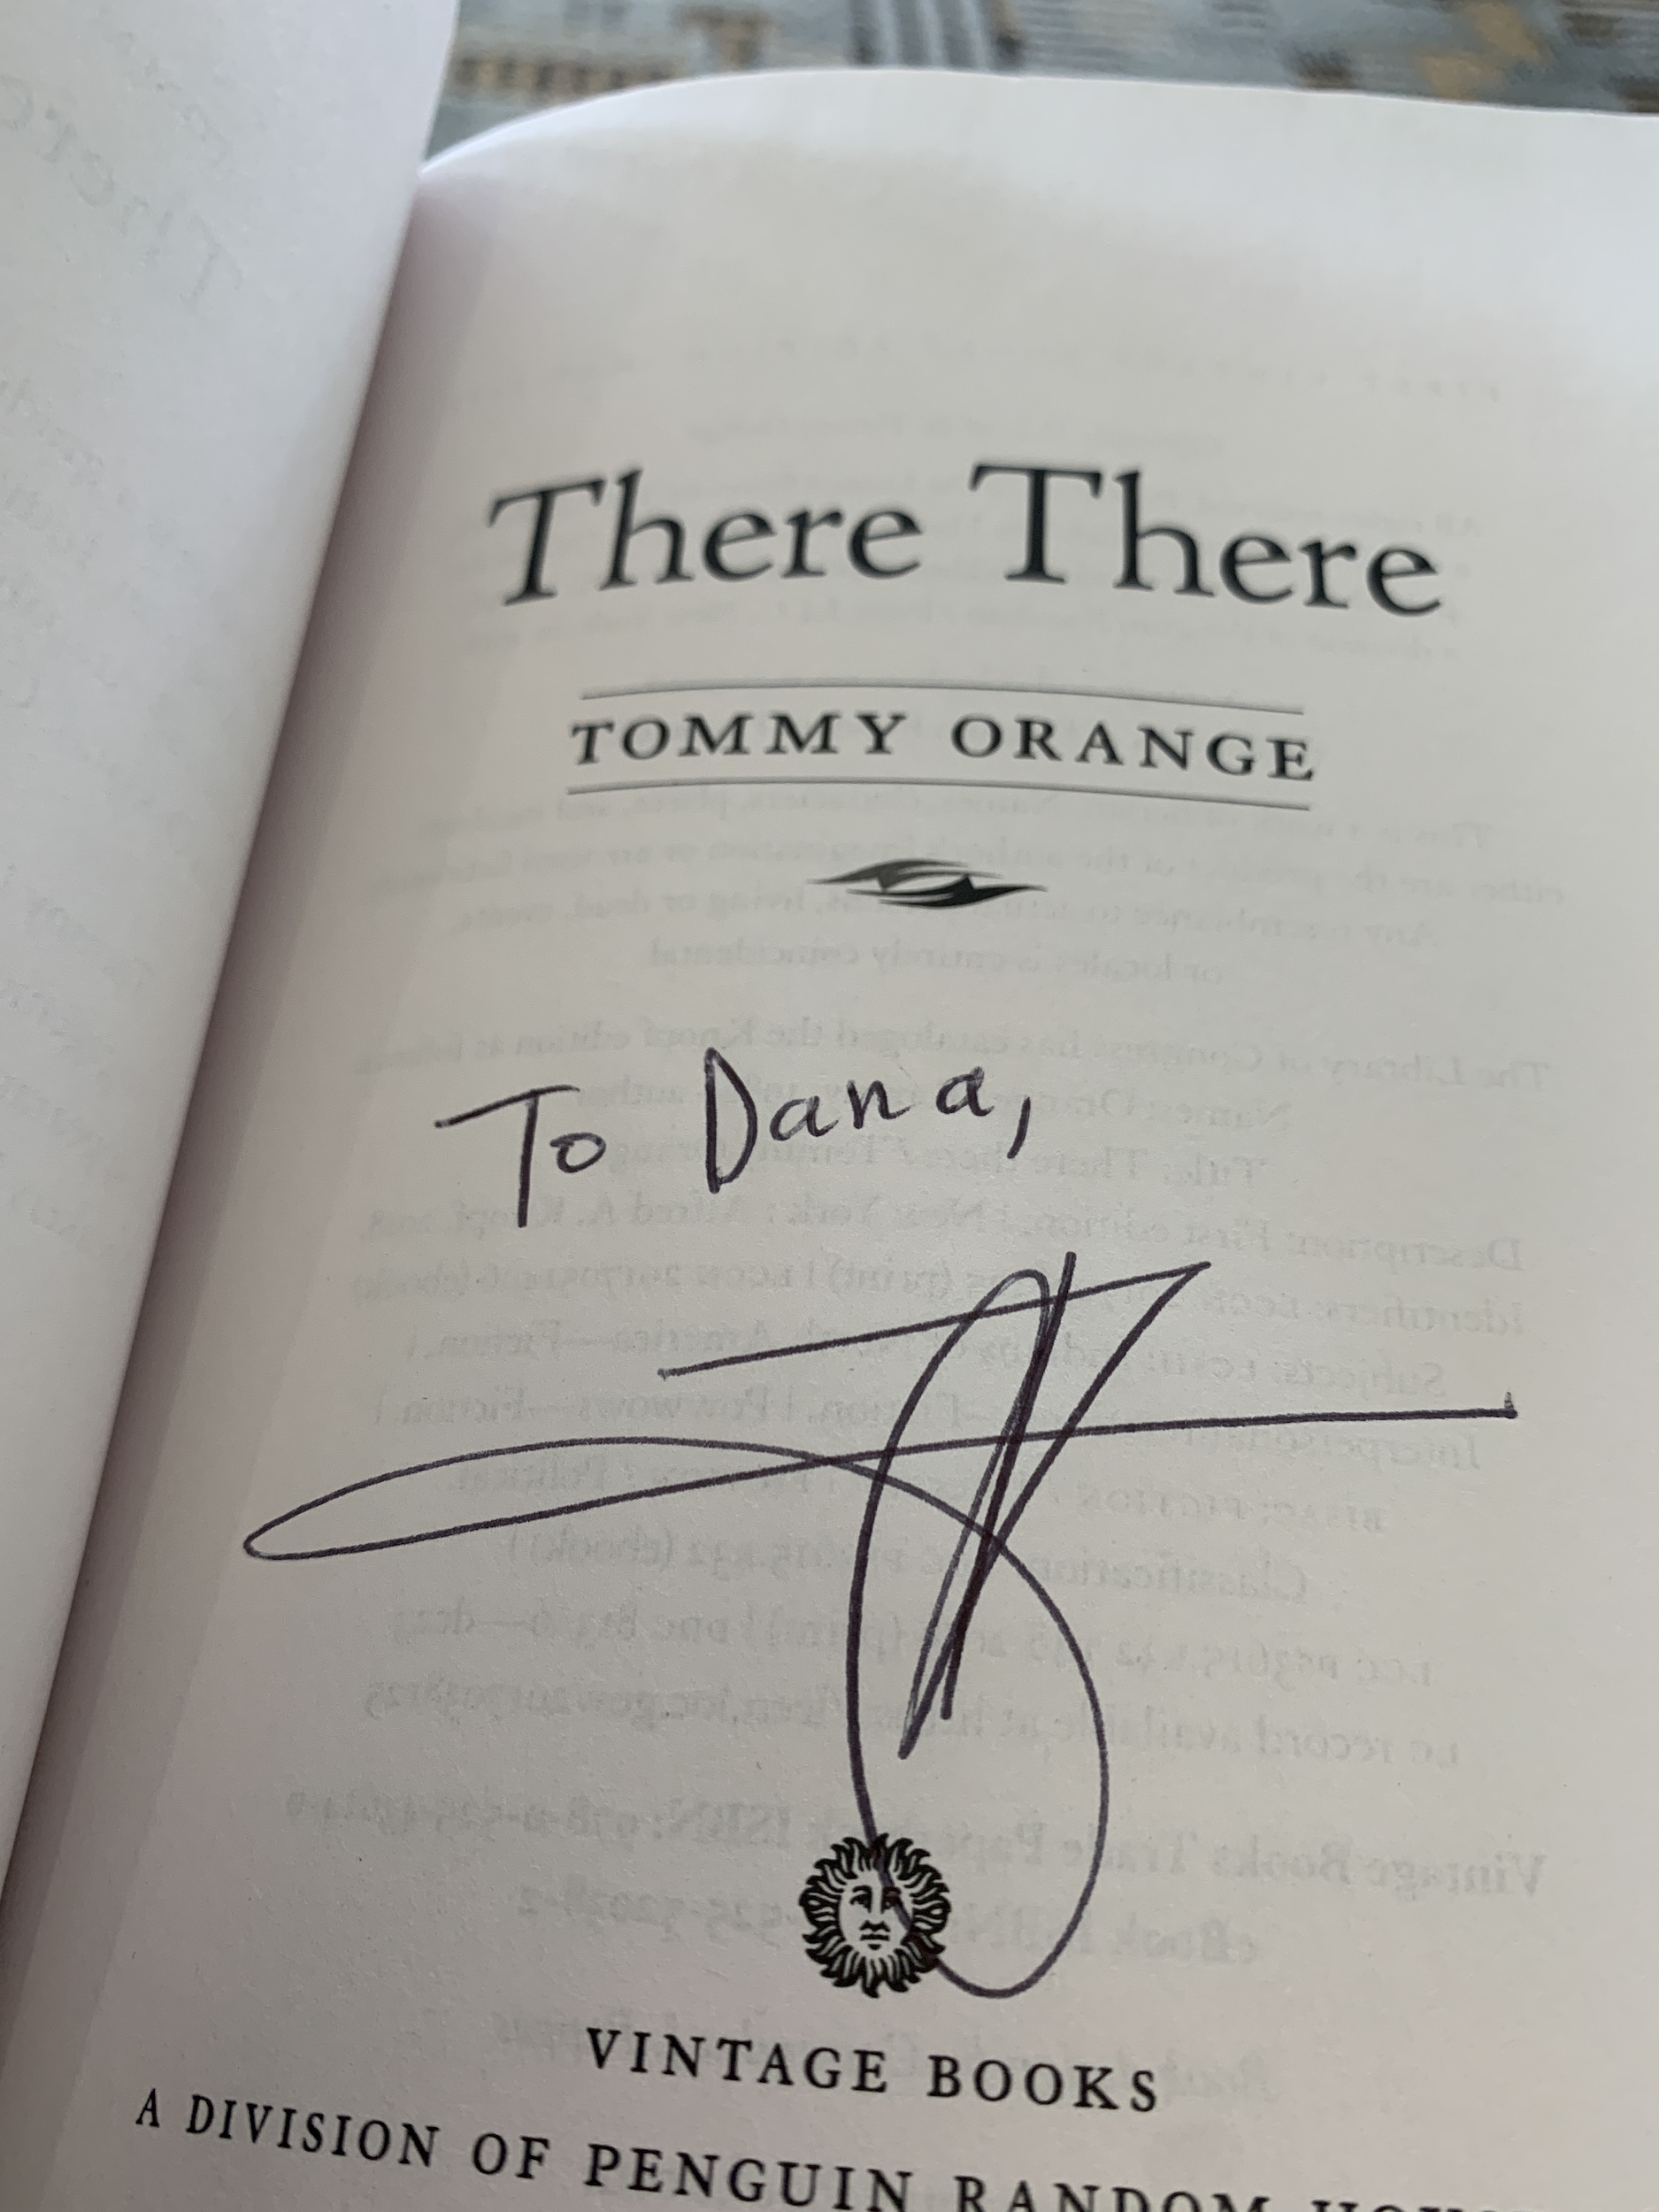 Tommy Orange Book Inscription